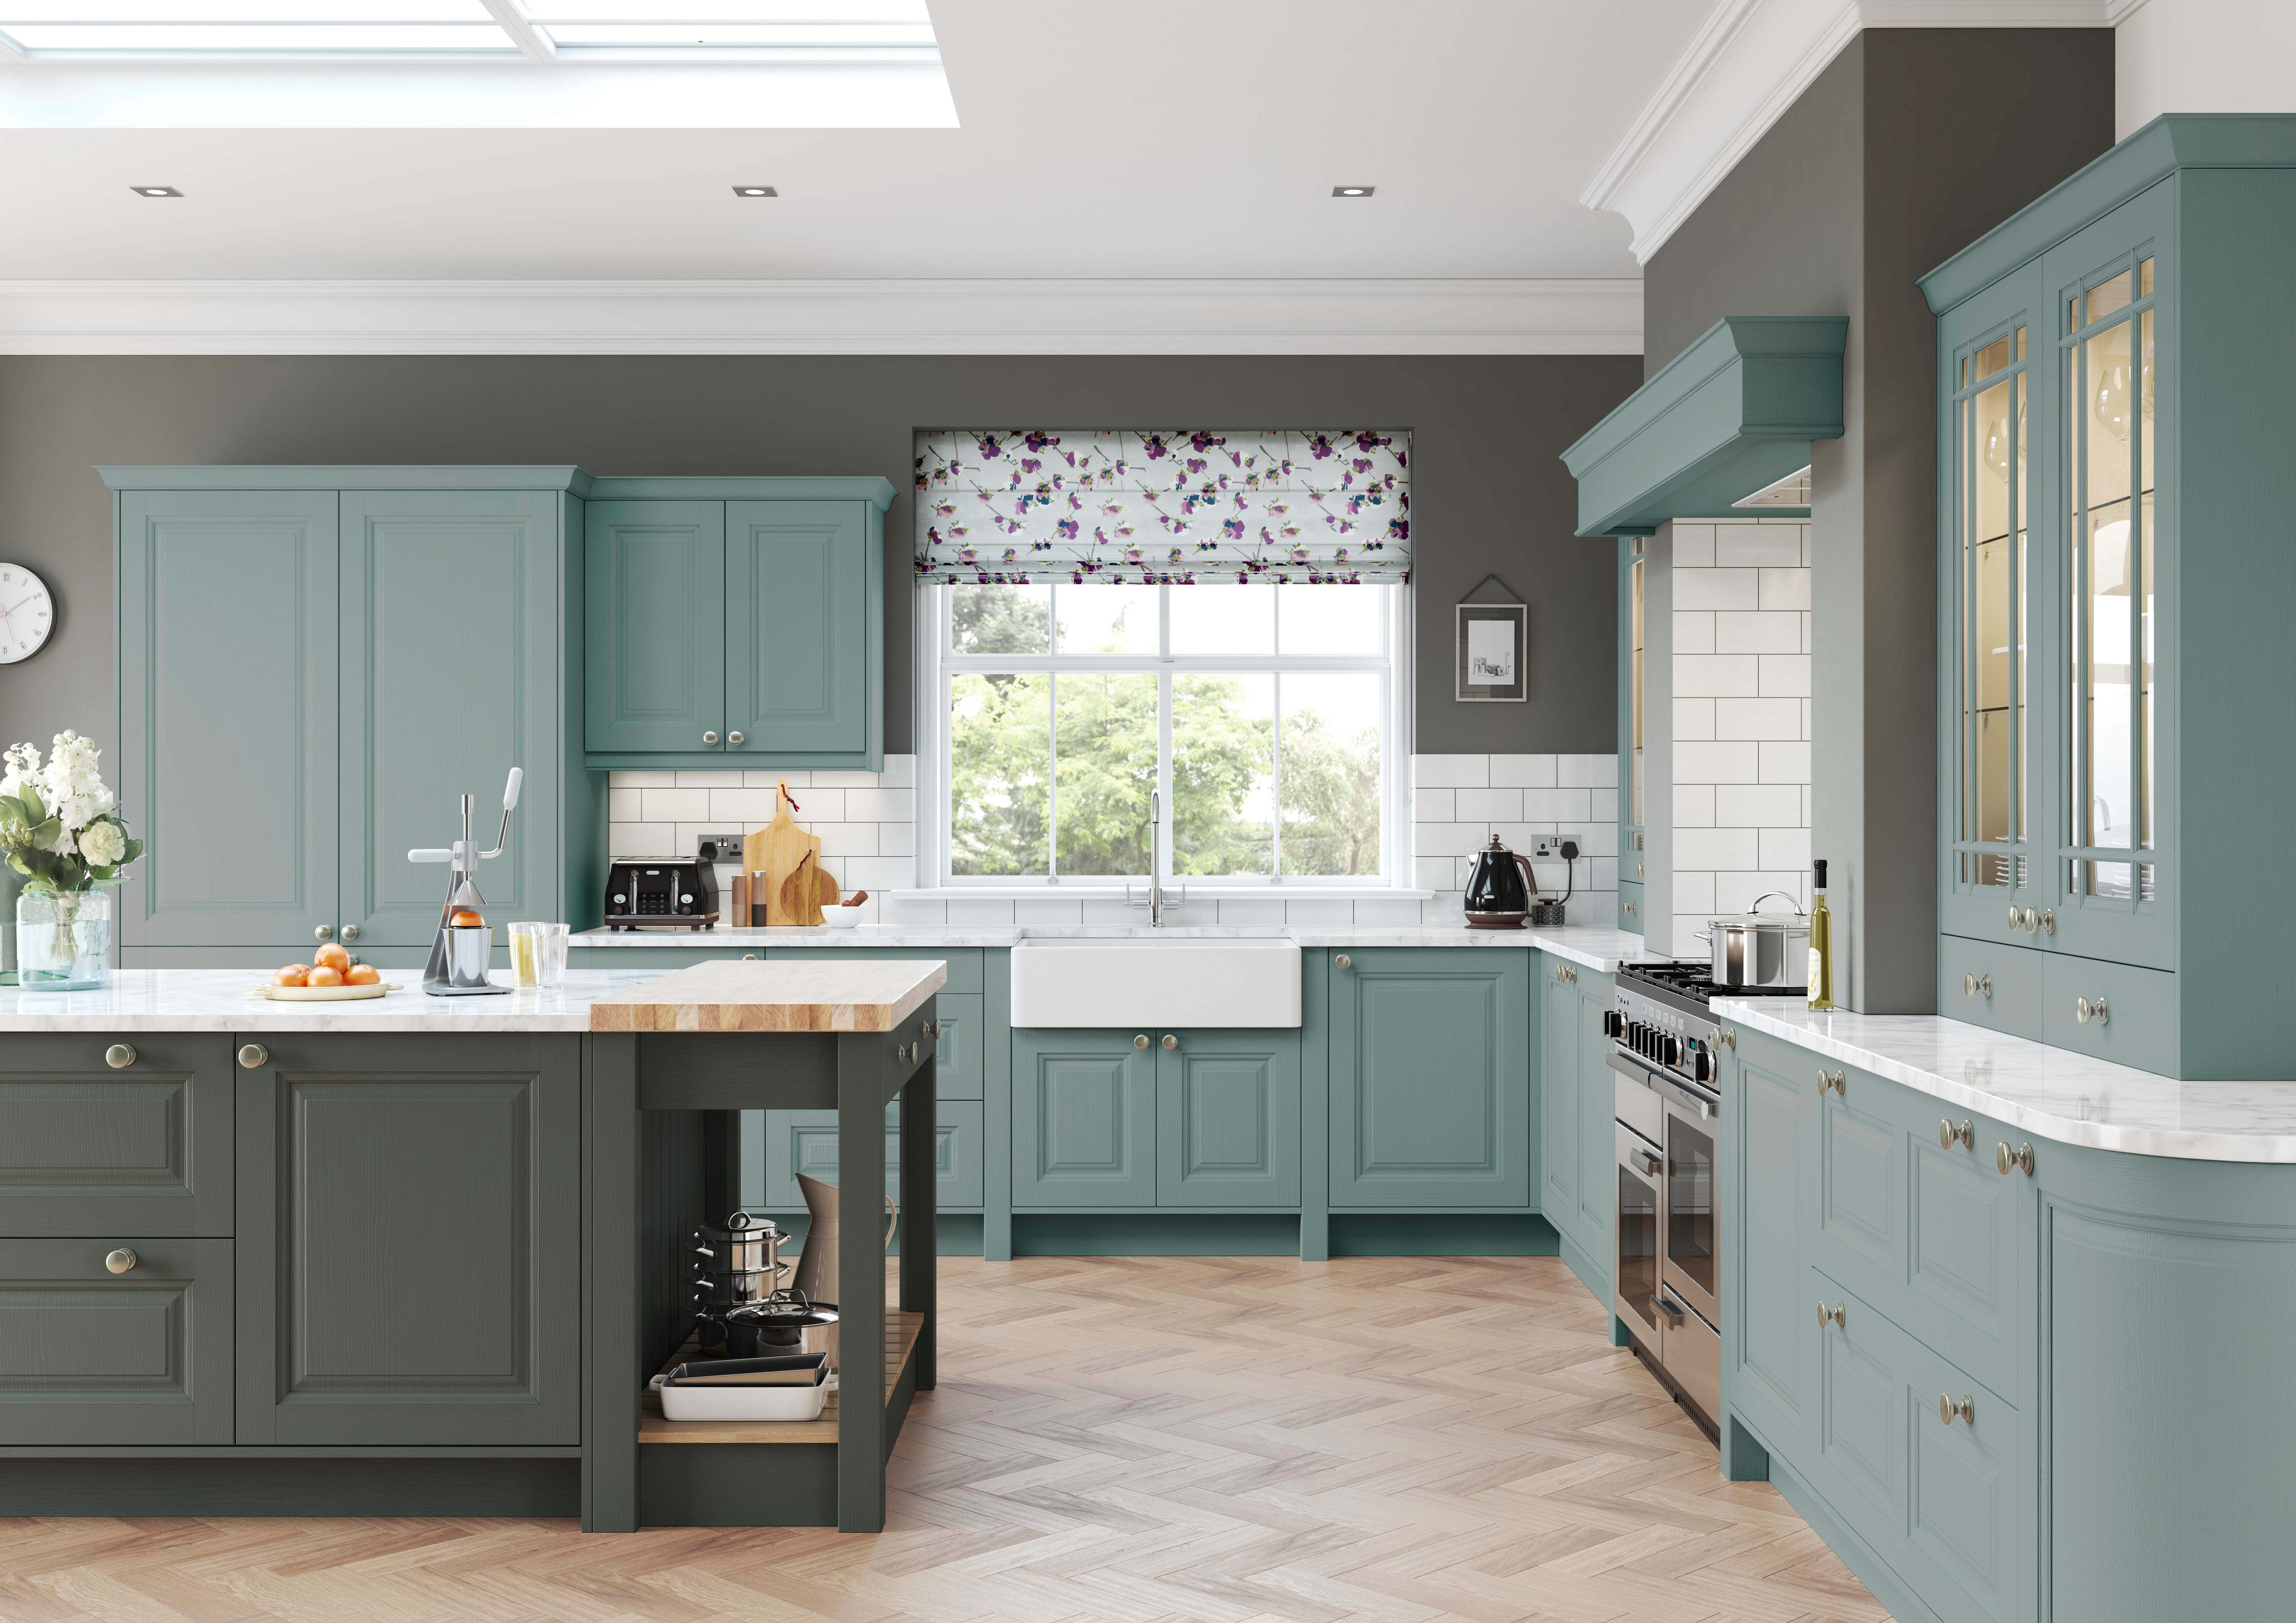 Charnwood kitchen Crestwood of Lymington